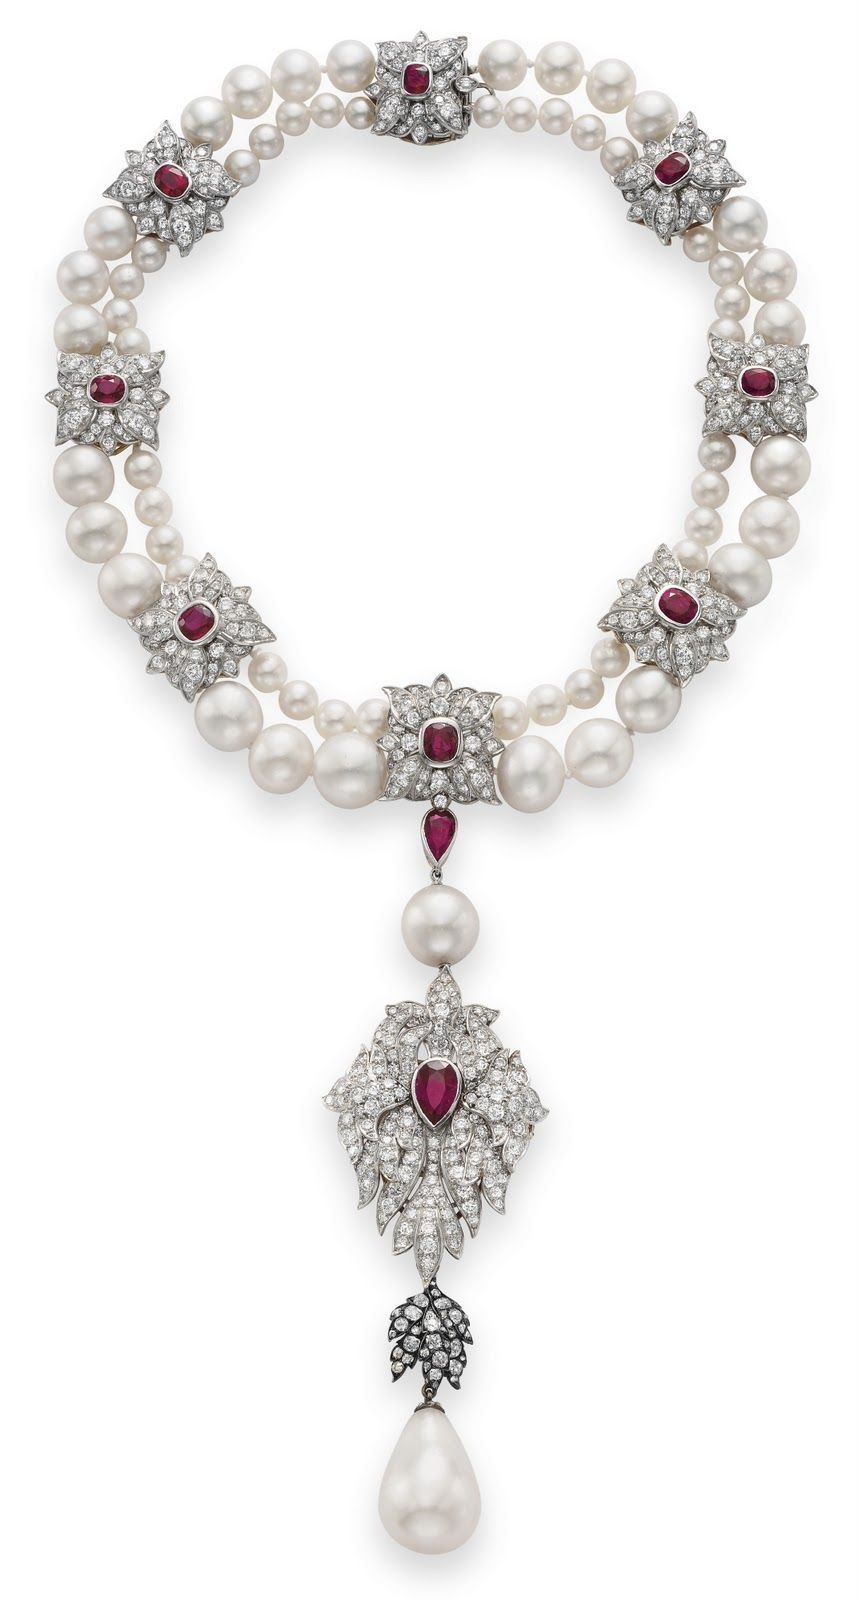 La Peregrina, a natural pearl once given to Mary I of